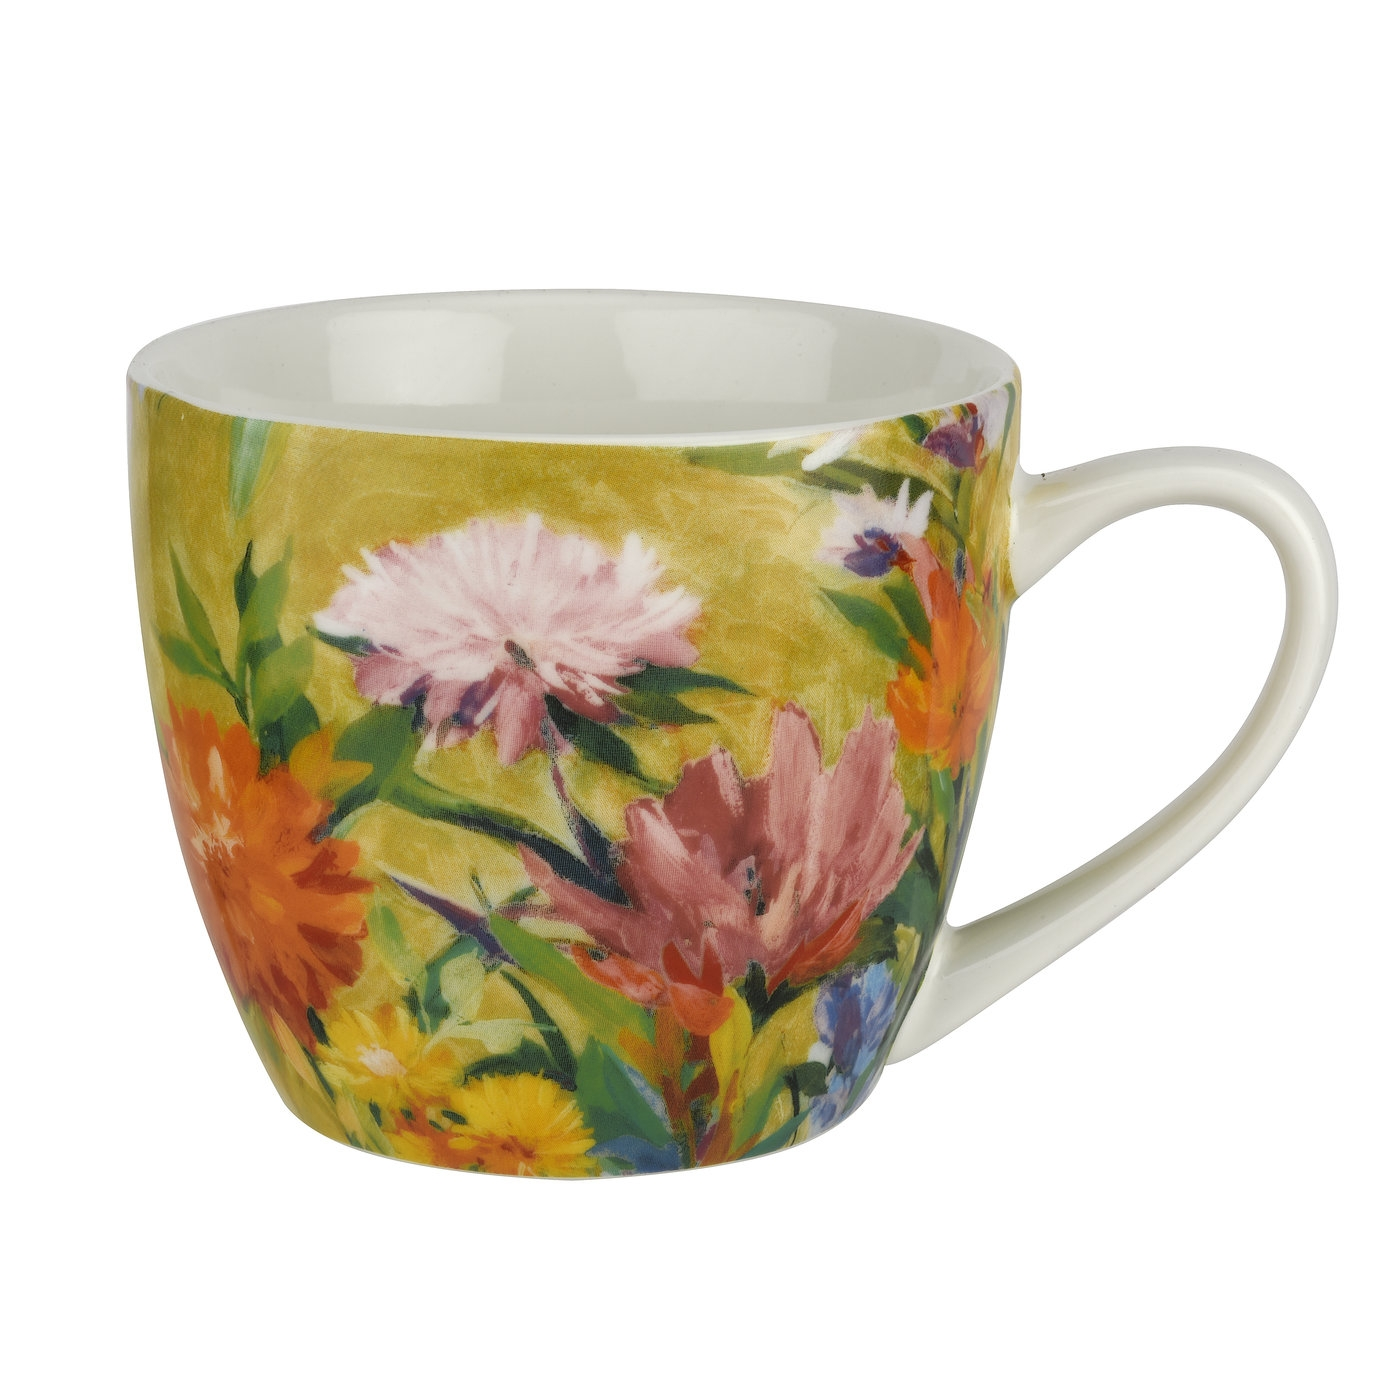 Pimpernel Martha's Choice 16 oz Mug image number 0